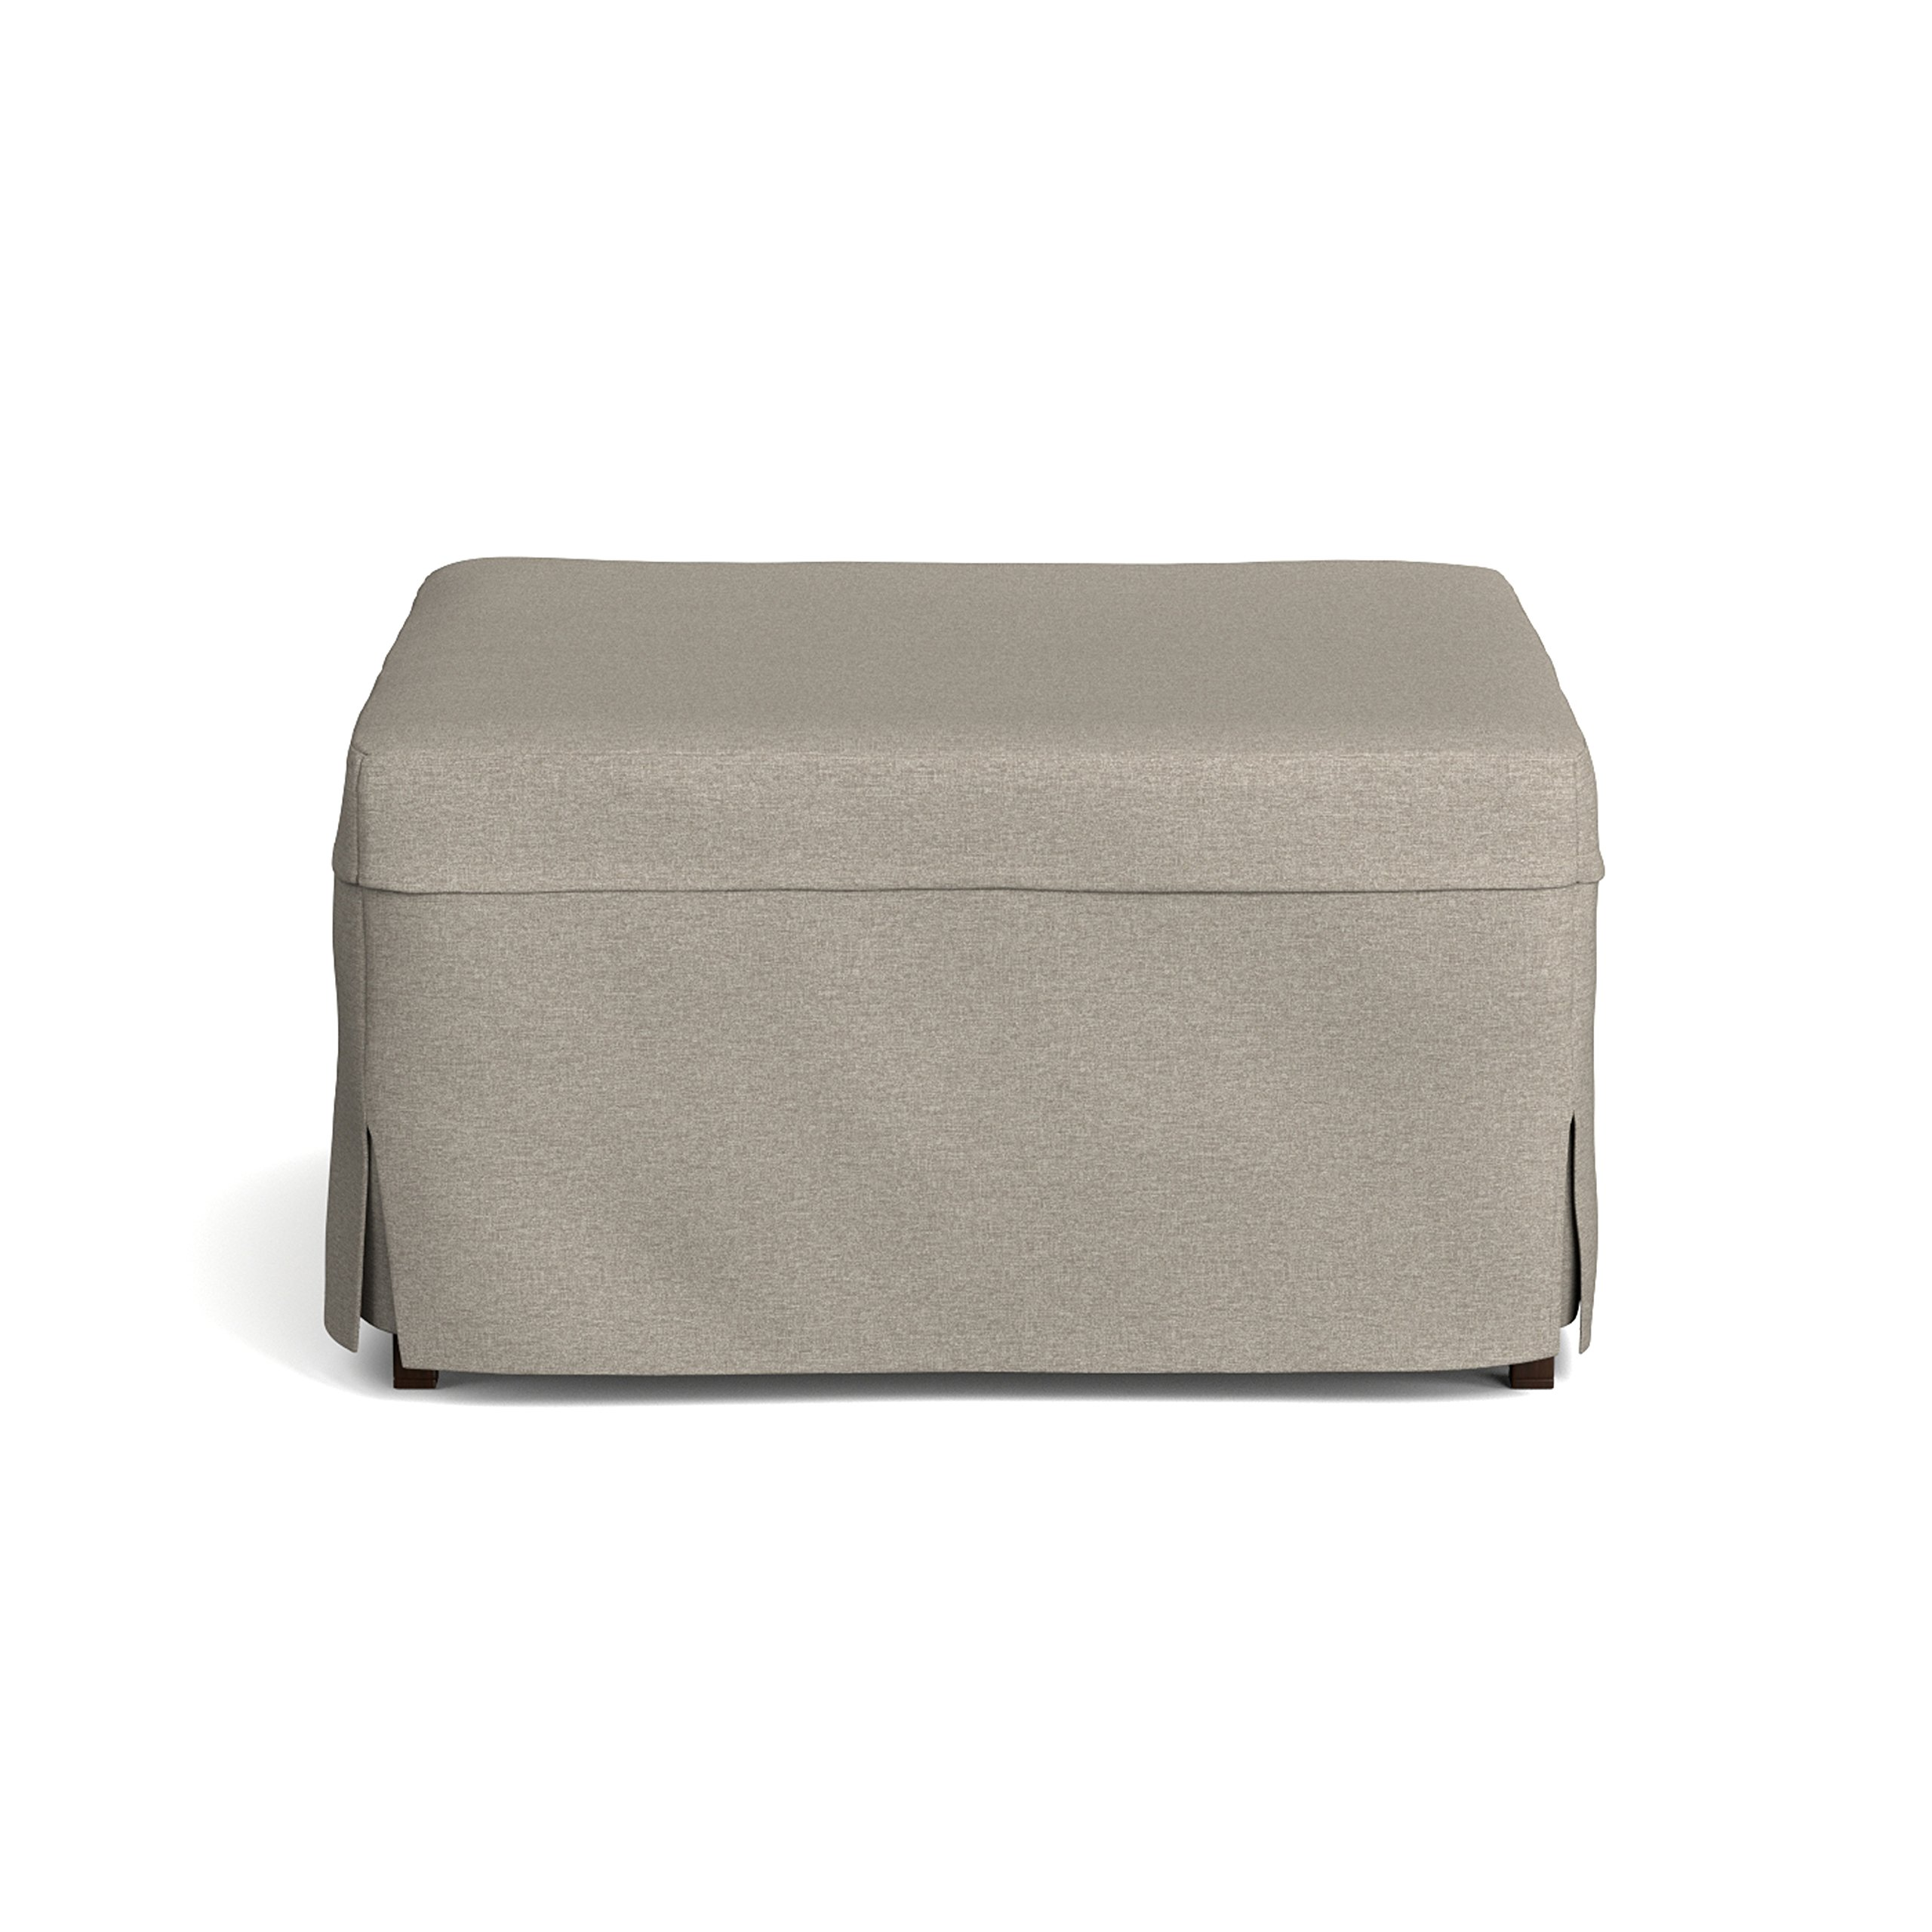 Handy Living Space Saving Folding Ottoman Sleeper Guest Bed, Gray/Brown, Twin by Handy Living